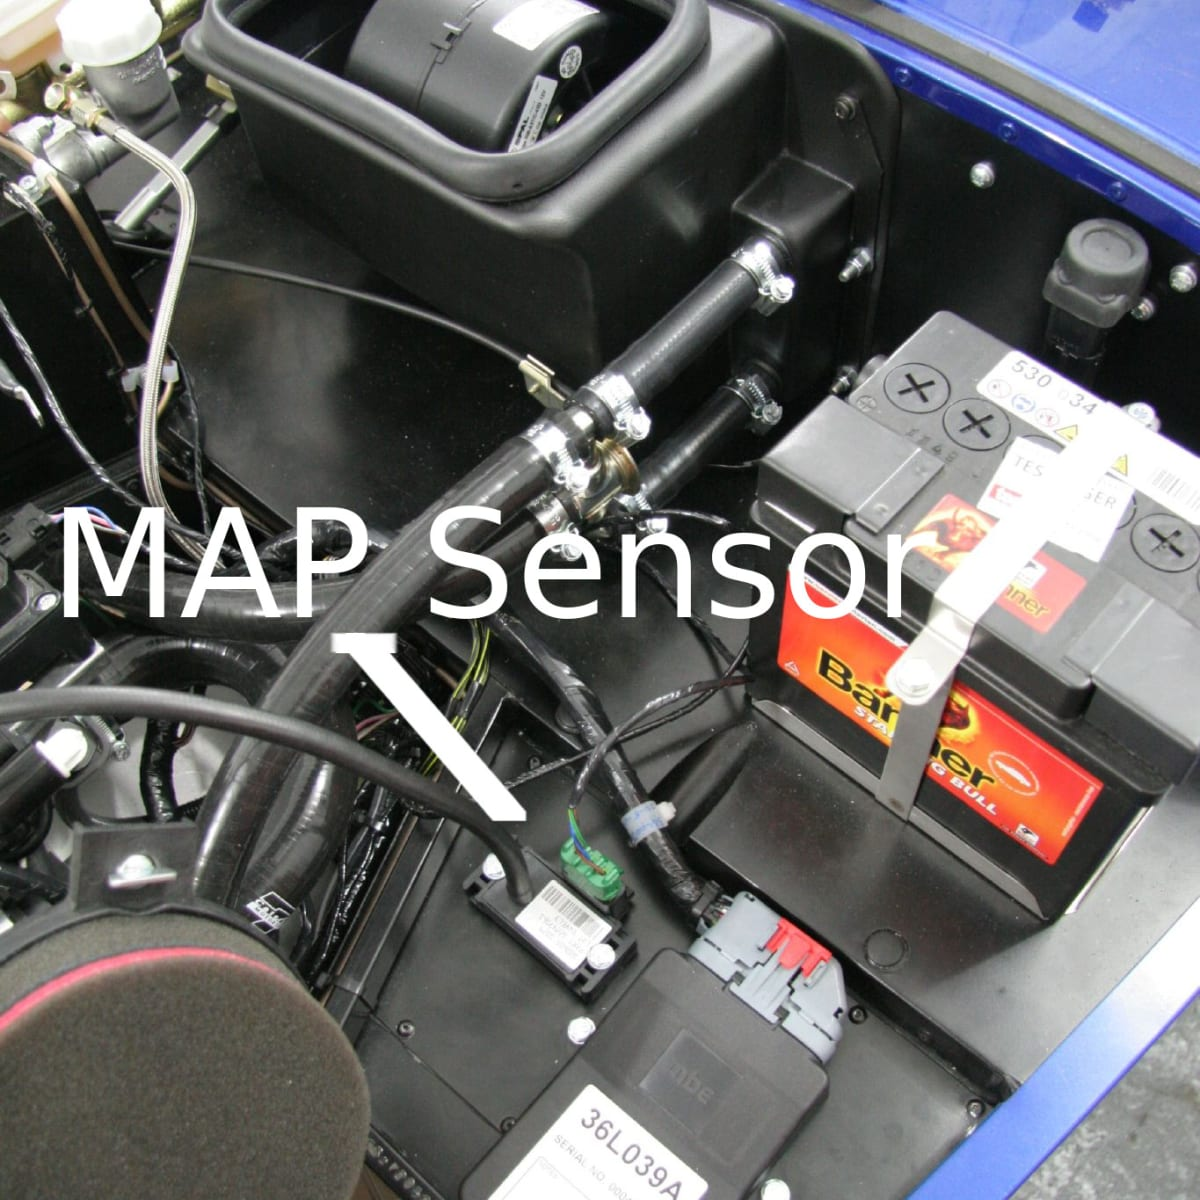 Symptoms Of A Bad Map Sensor And How To Test One Axleaddict A Community Of Car Lovers Enthusiasts And Mechanics Sharing Our Auto Advice